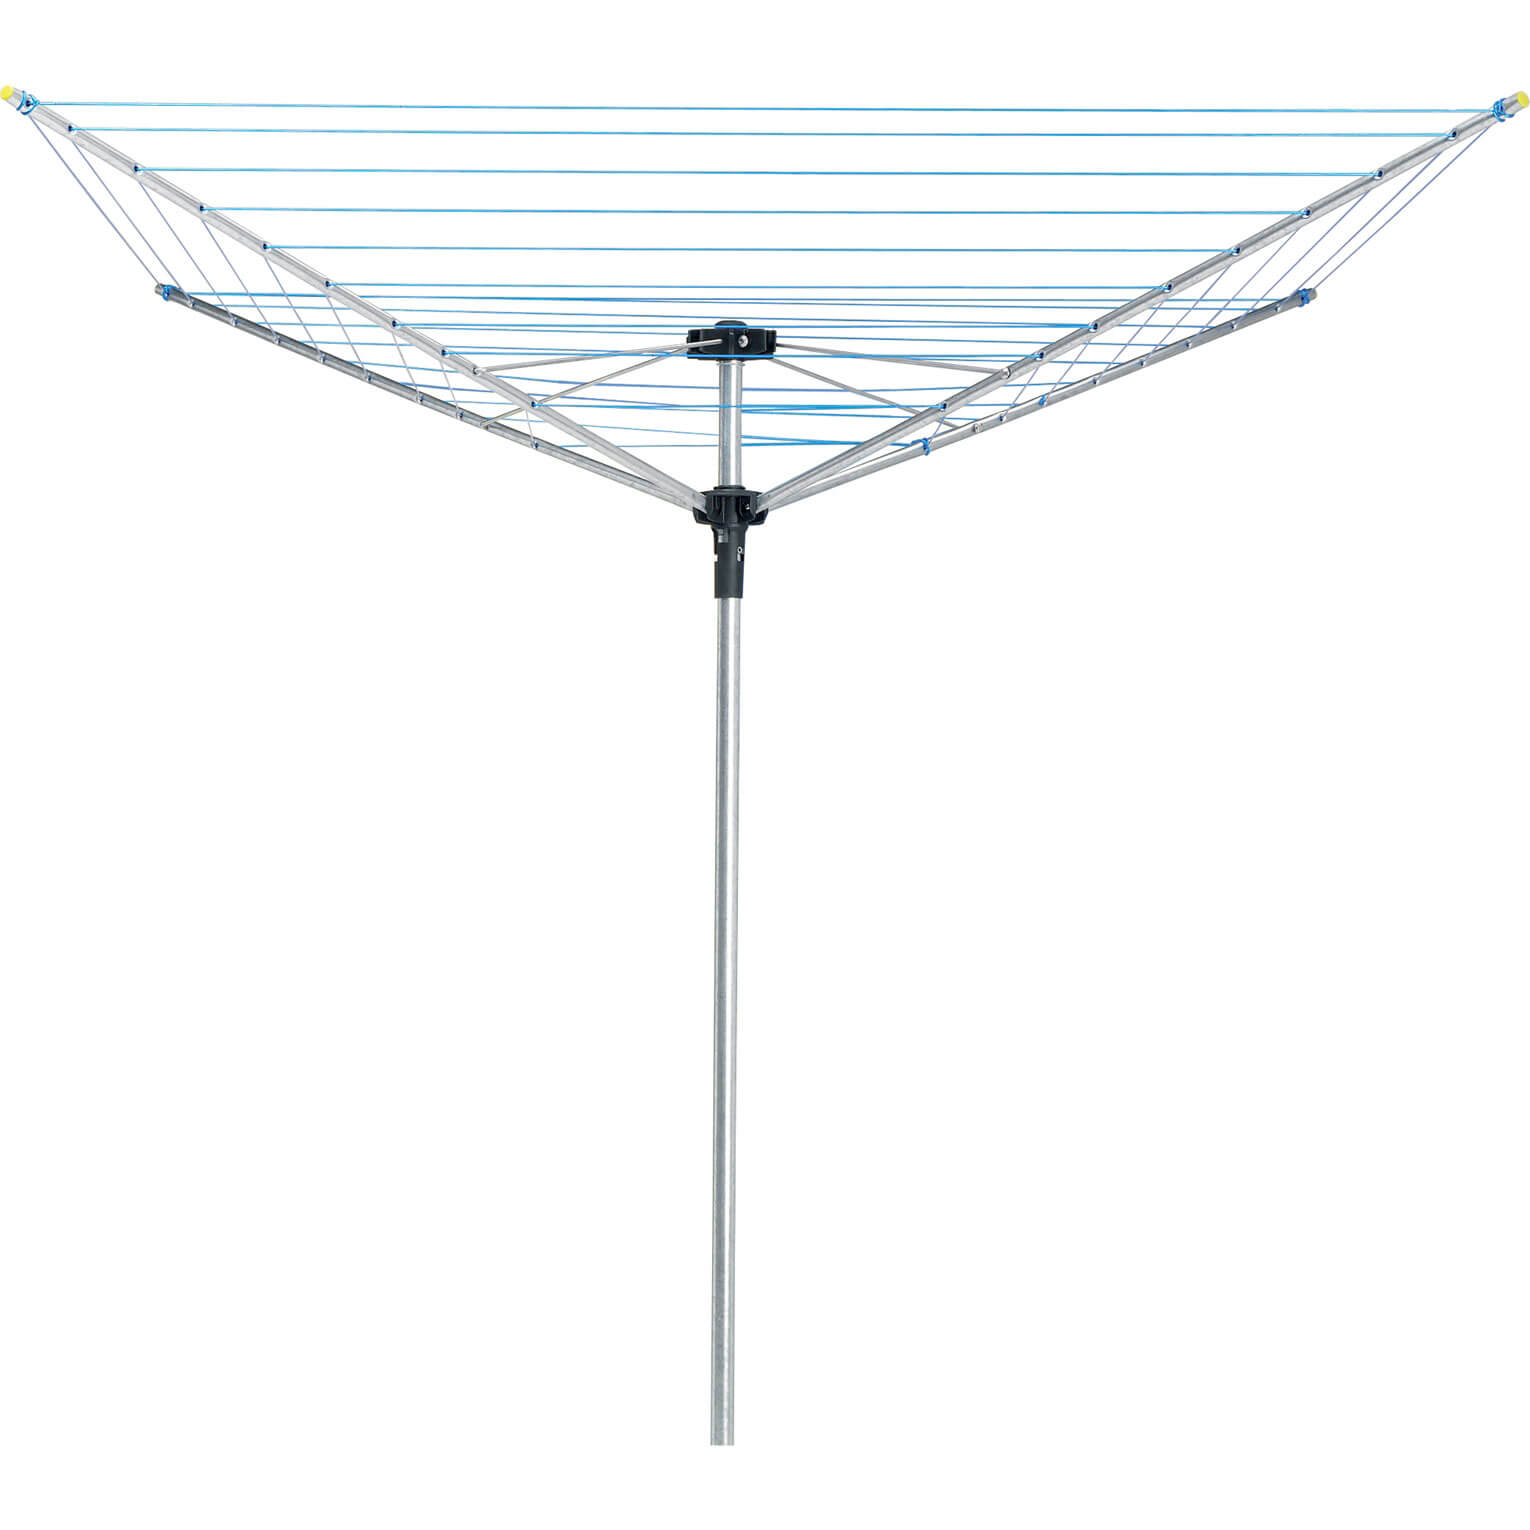 Image of Hills Industries 1410 4 Arm Rotary Washing Line with 40m Line